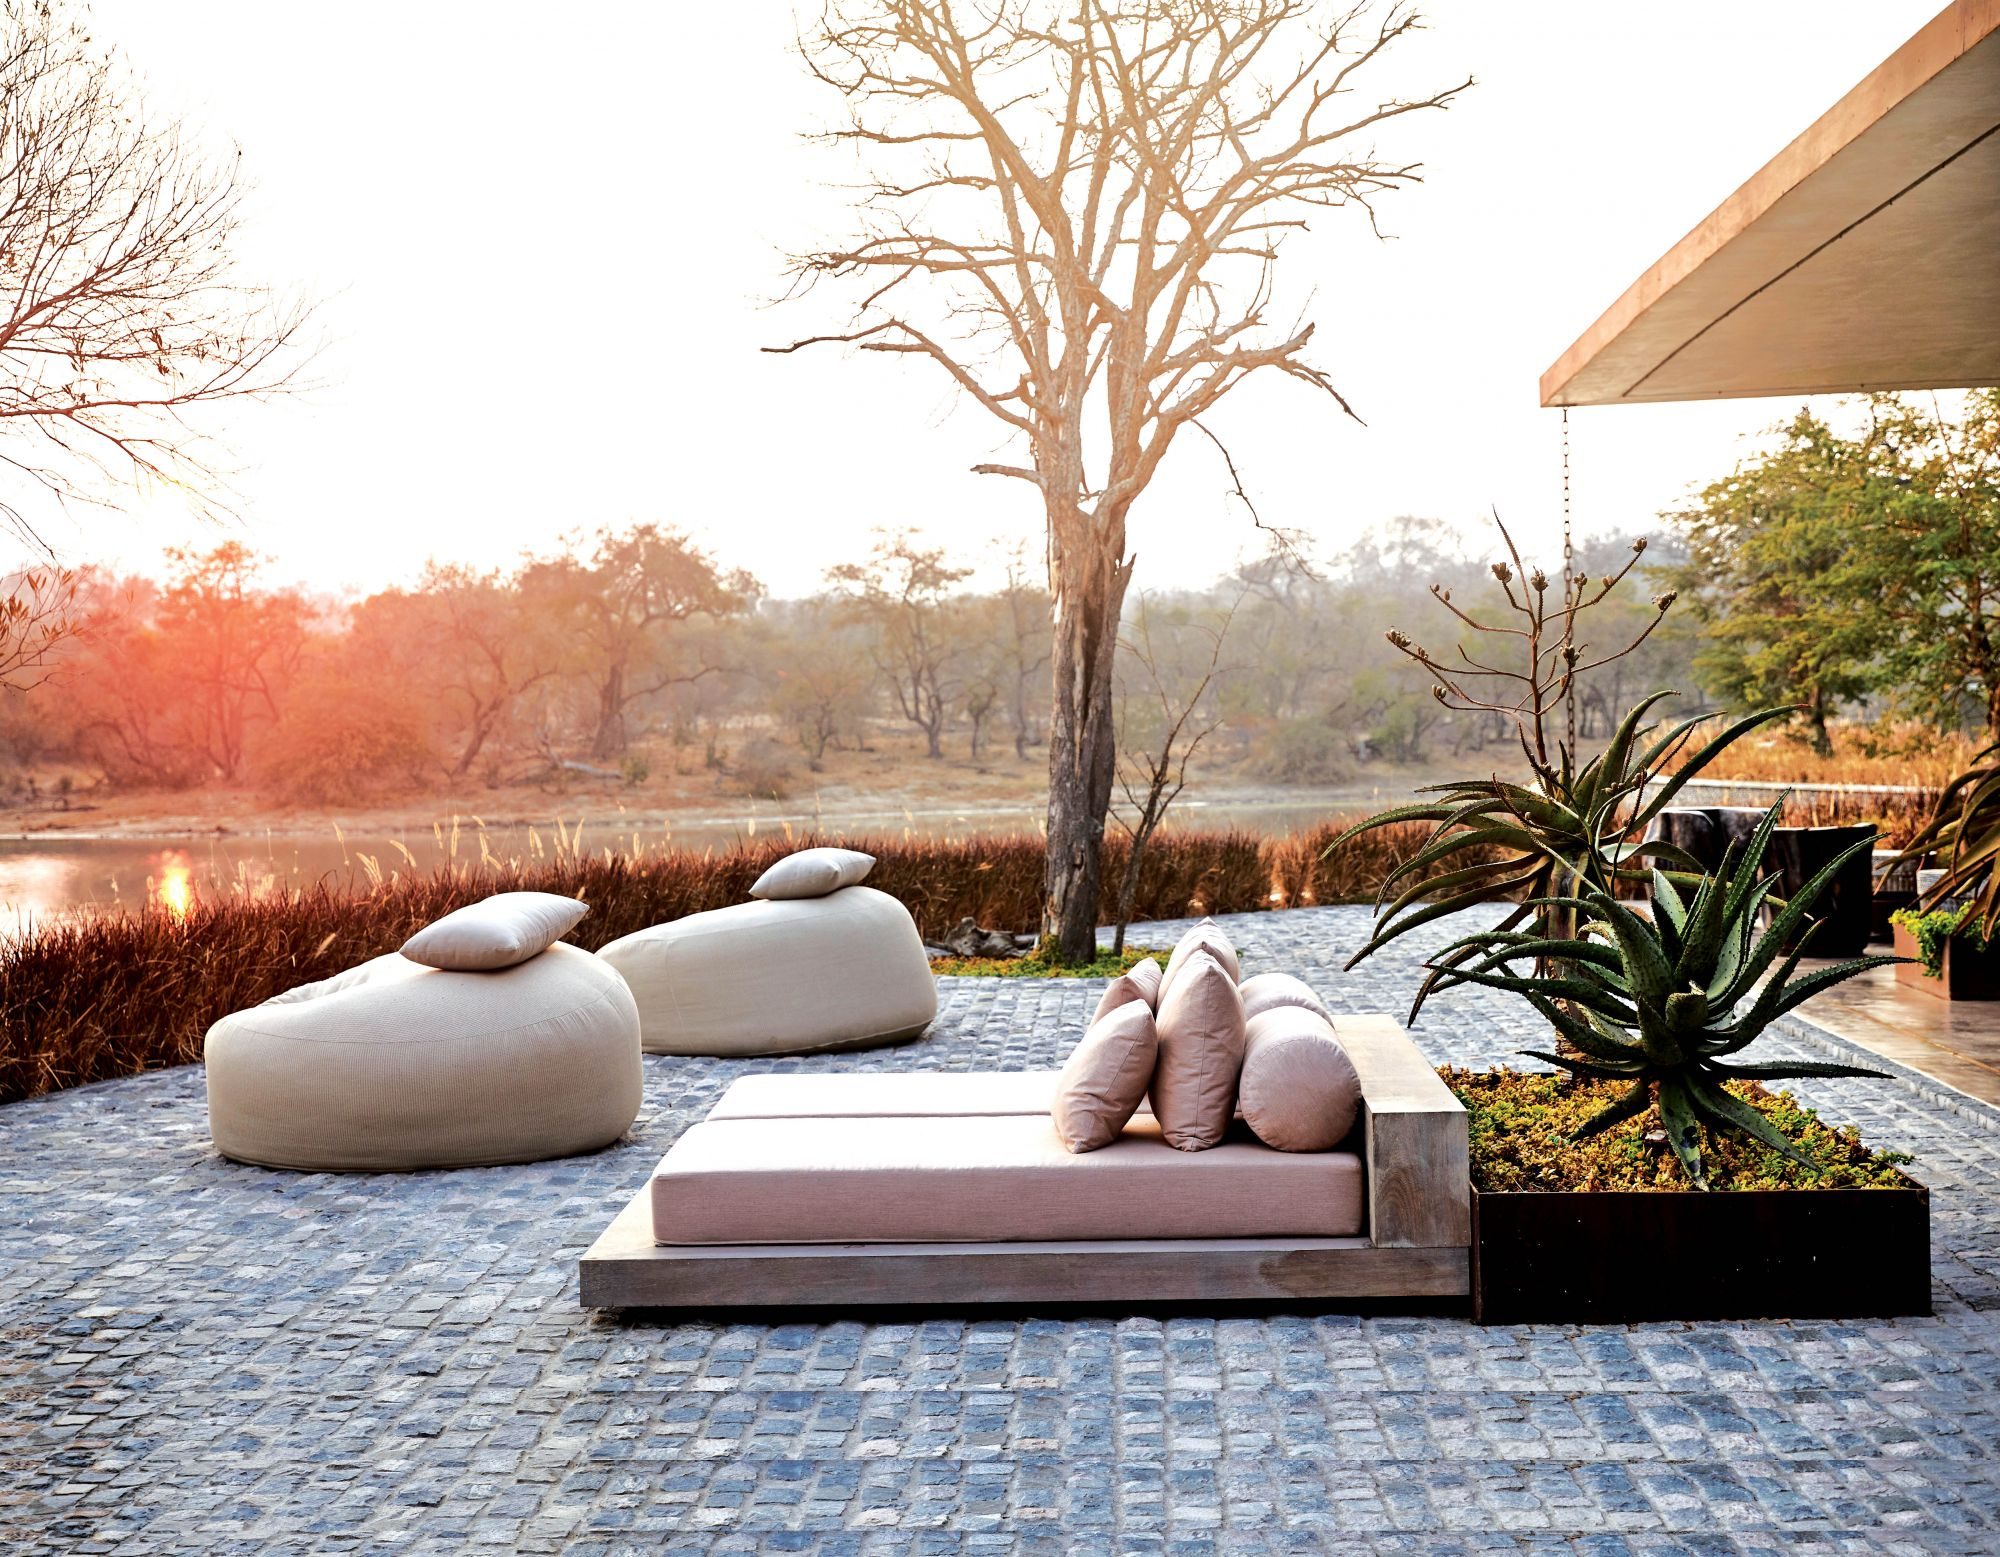 Home Tour: Inside The Holiday Home Near South Africa's Famous Kruger National Park